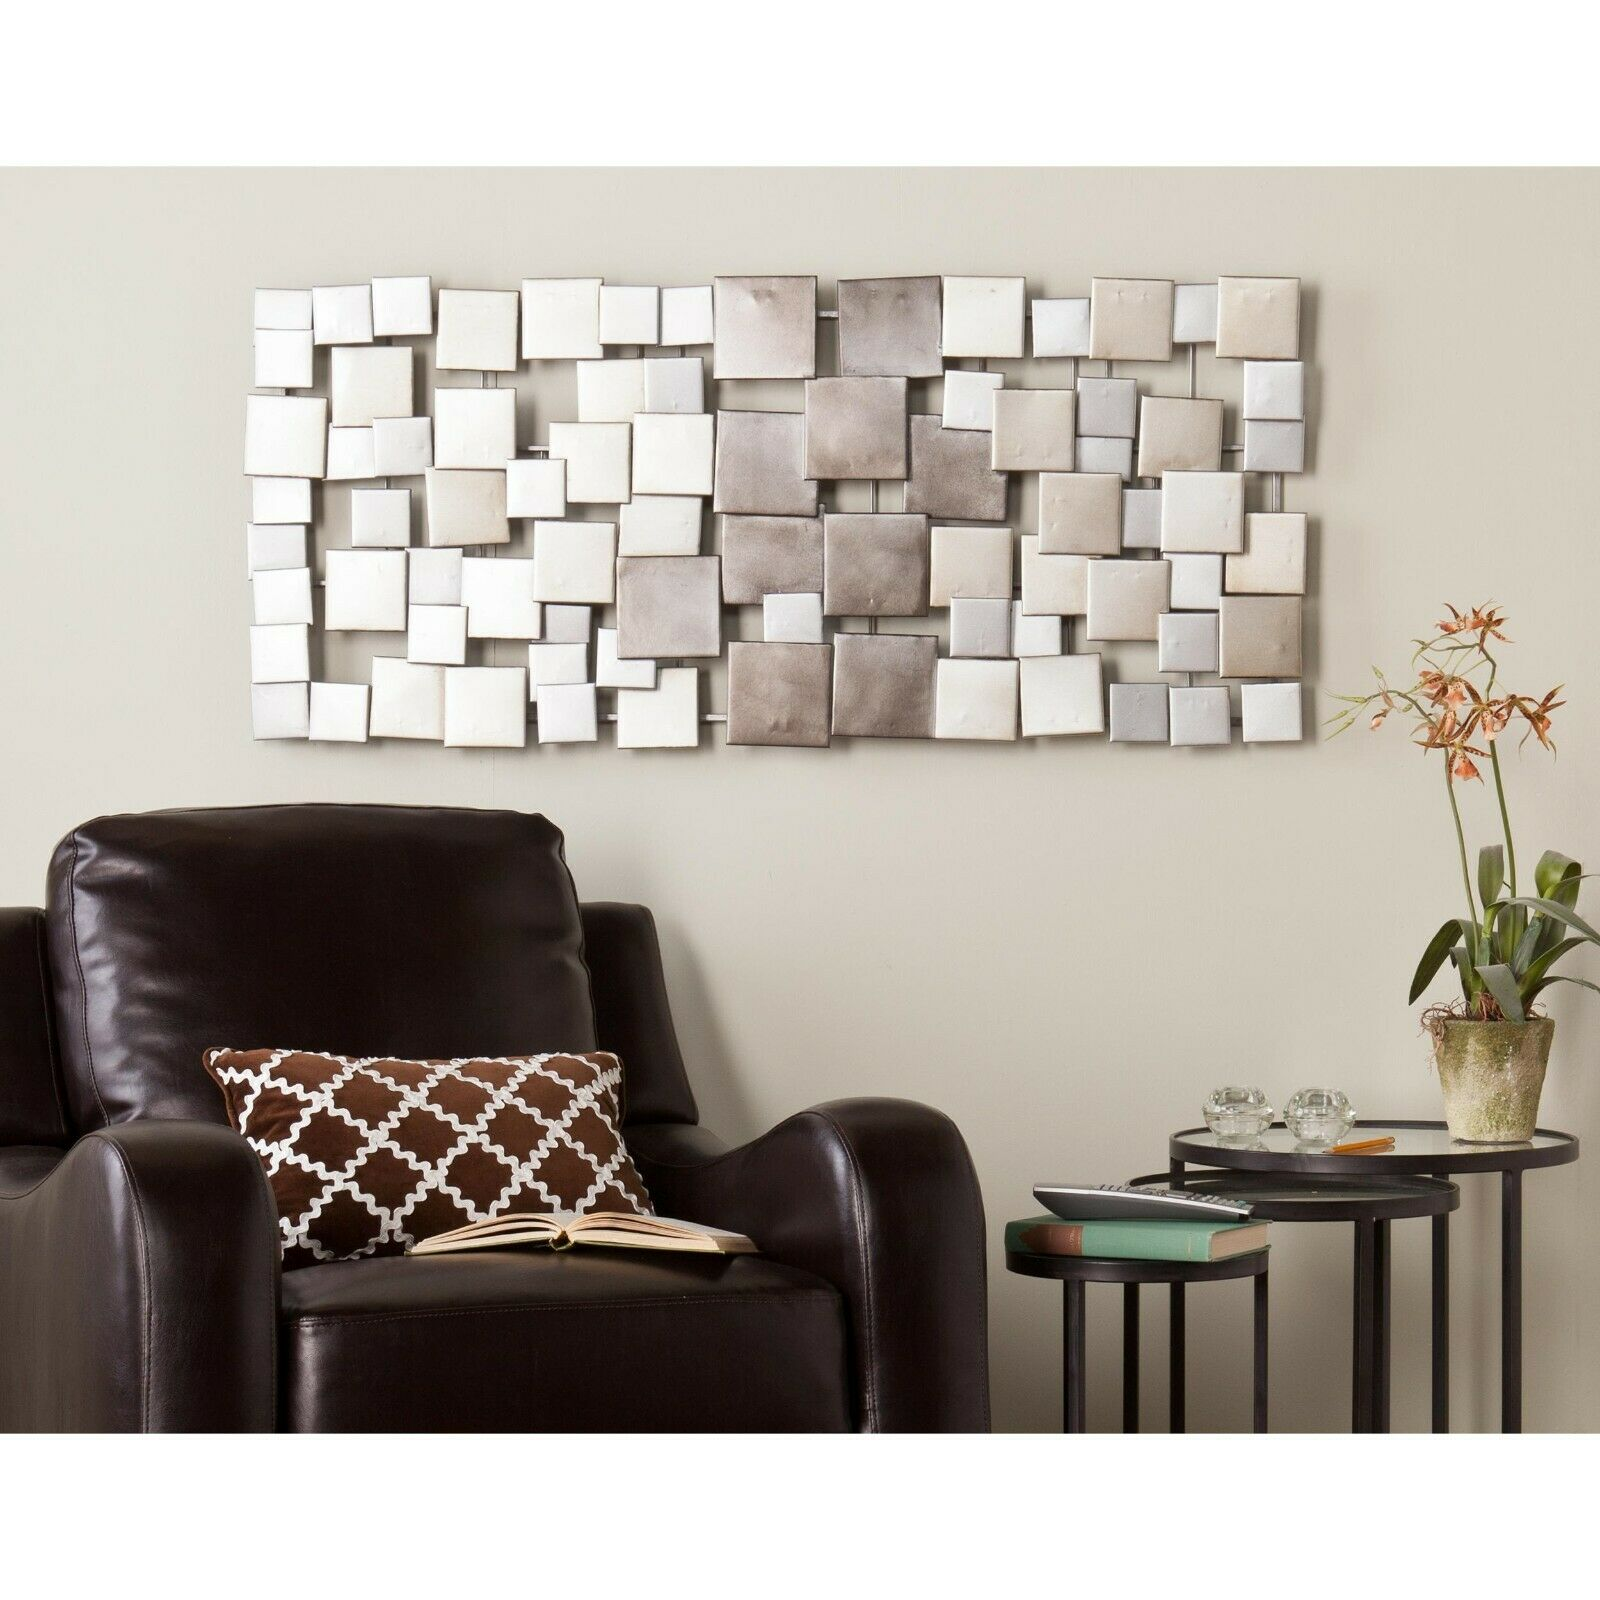 Large Metal Sculpture Abstract Modern Silver Wall Art Contemporary Modern Decor For Sale Online